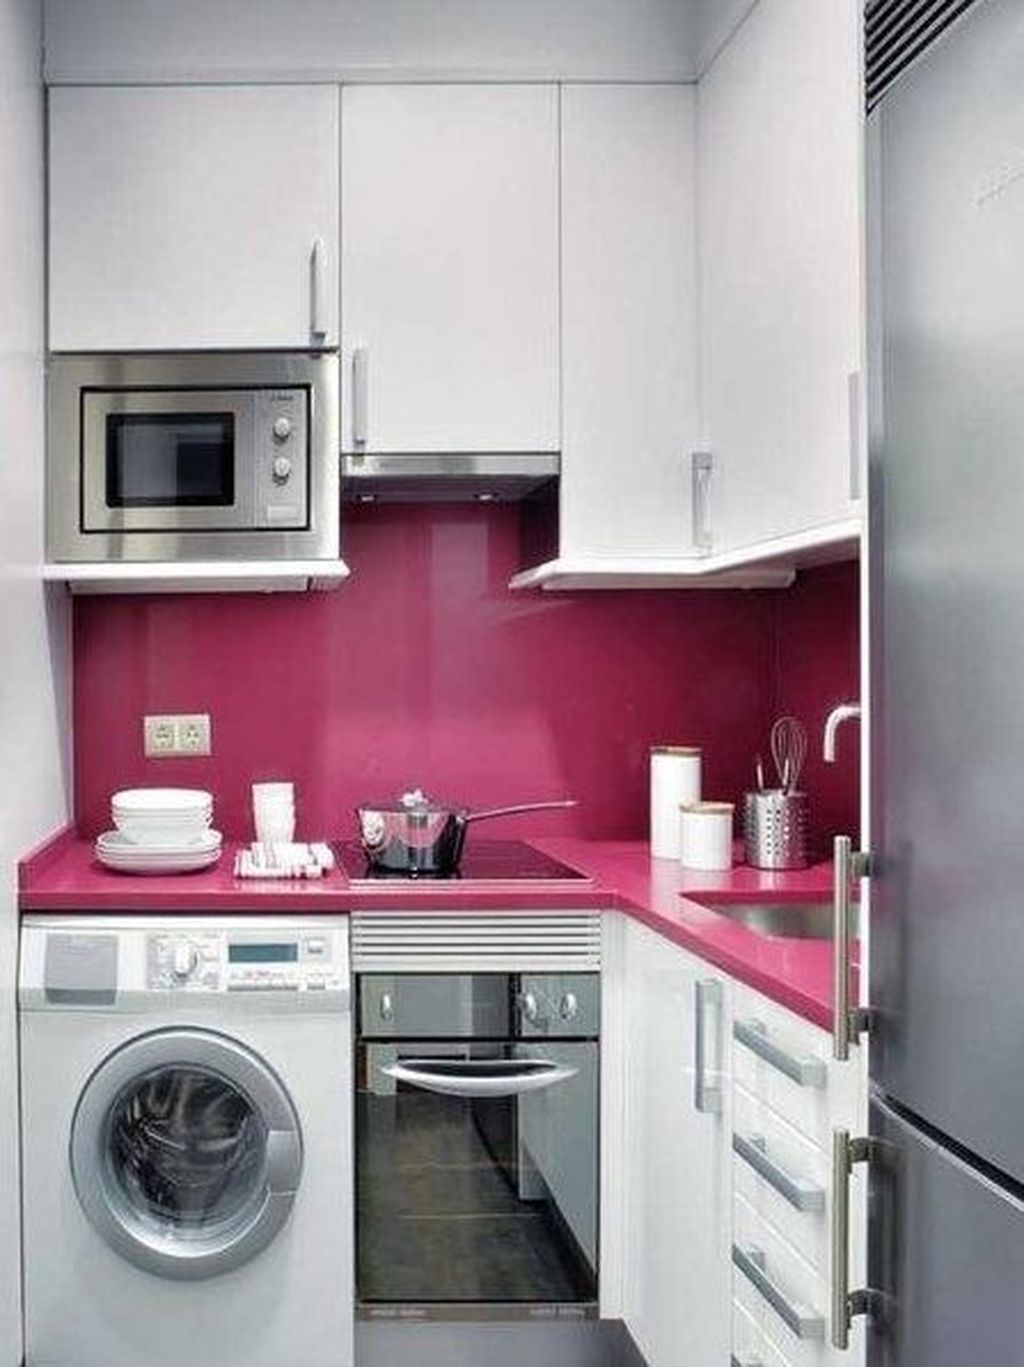 Awesome 30+ Inspiring Small Kitchen Design Ideas For Small Home. #  #KitchenDesignIdeas #